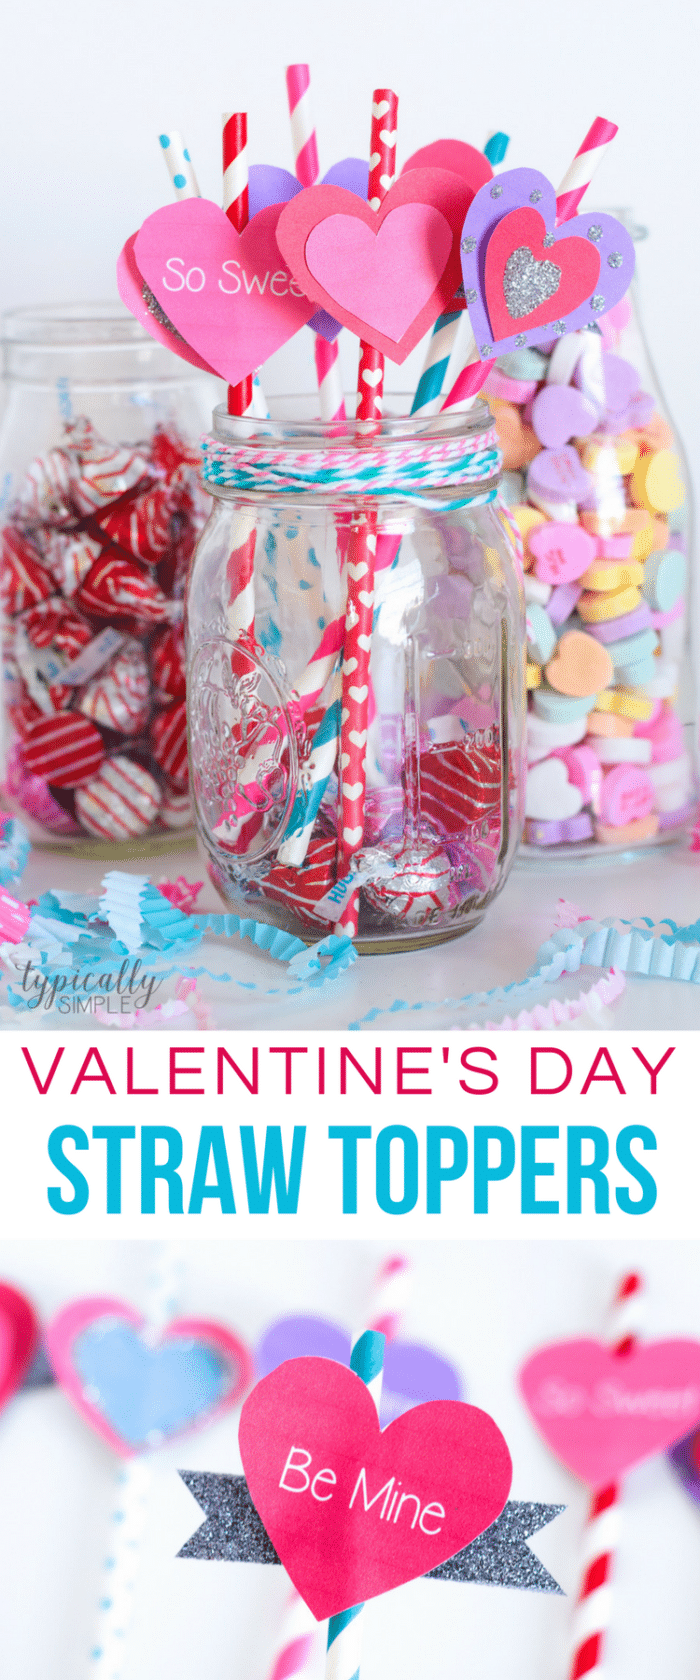 Valentines Day Straw Toppers Party Idea 700x1680 Diybunker